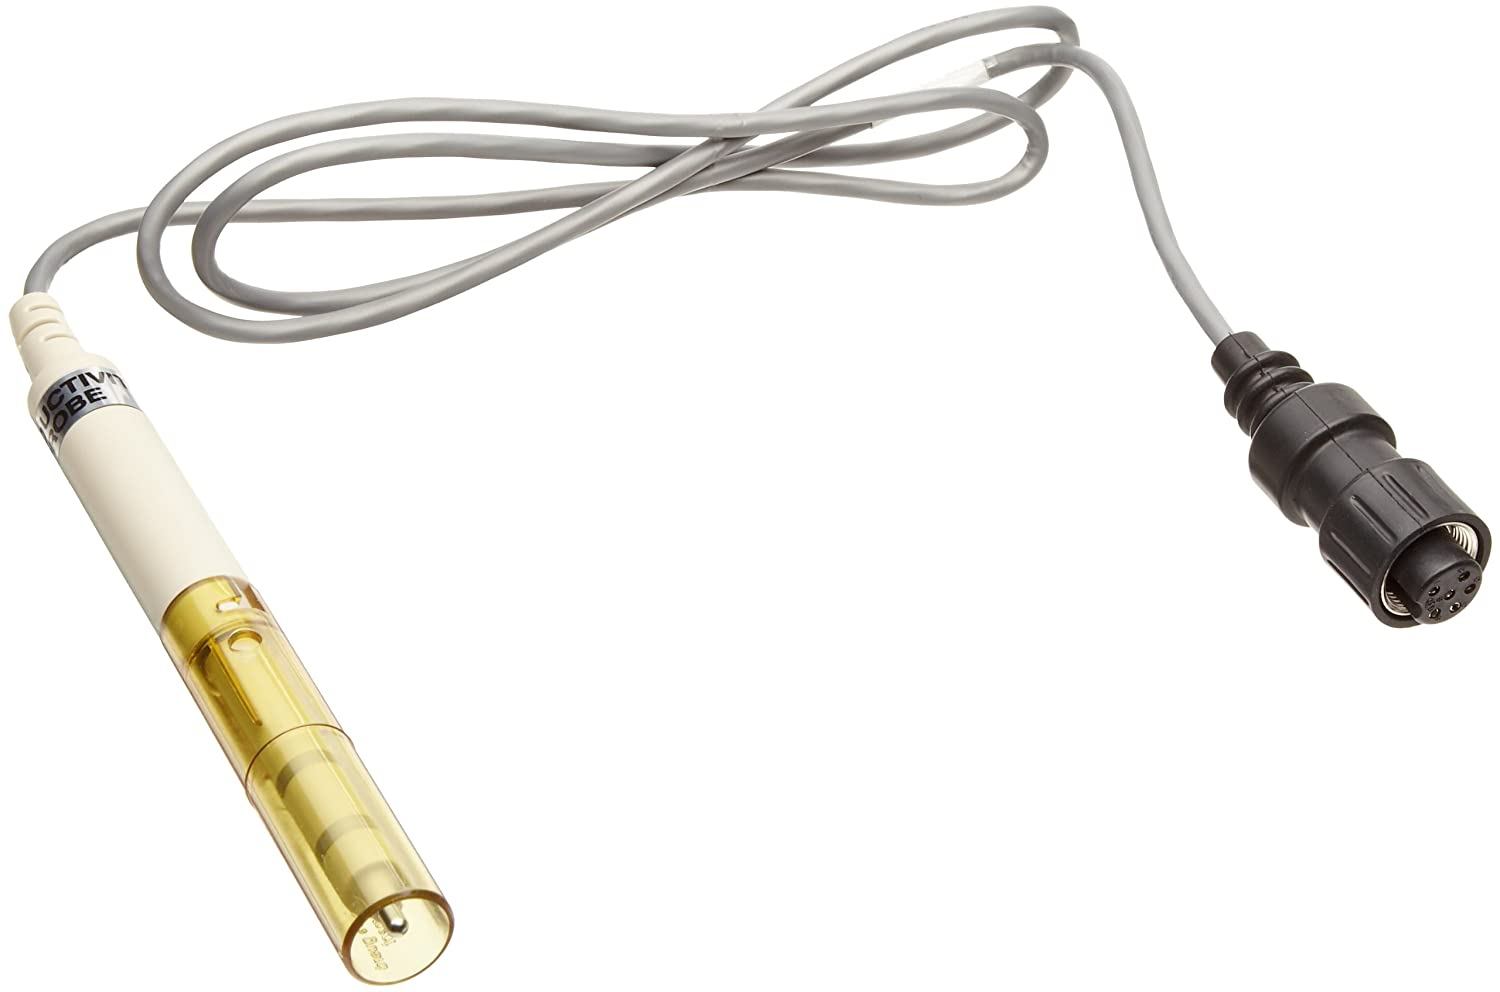 Oakton Ultem body Replacement Conductivity Cell, with Stainless Steel Sensor, K = 1.0, For Conductivity/TDS Meter